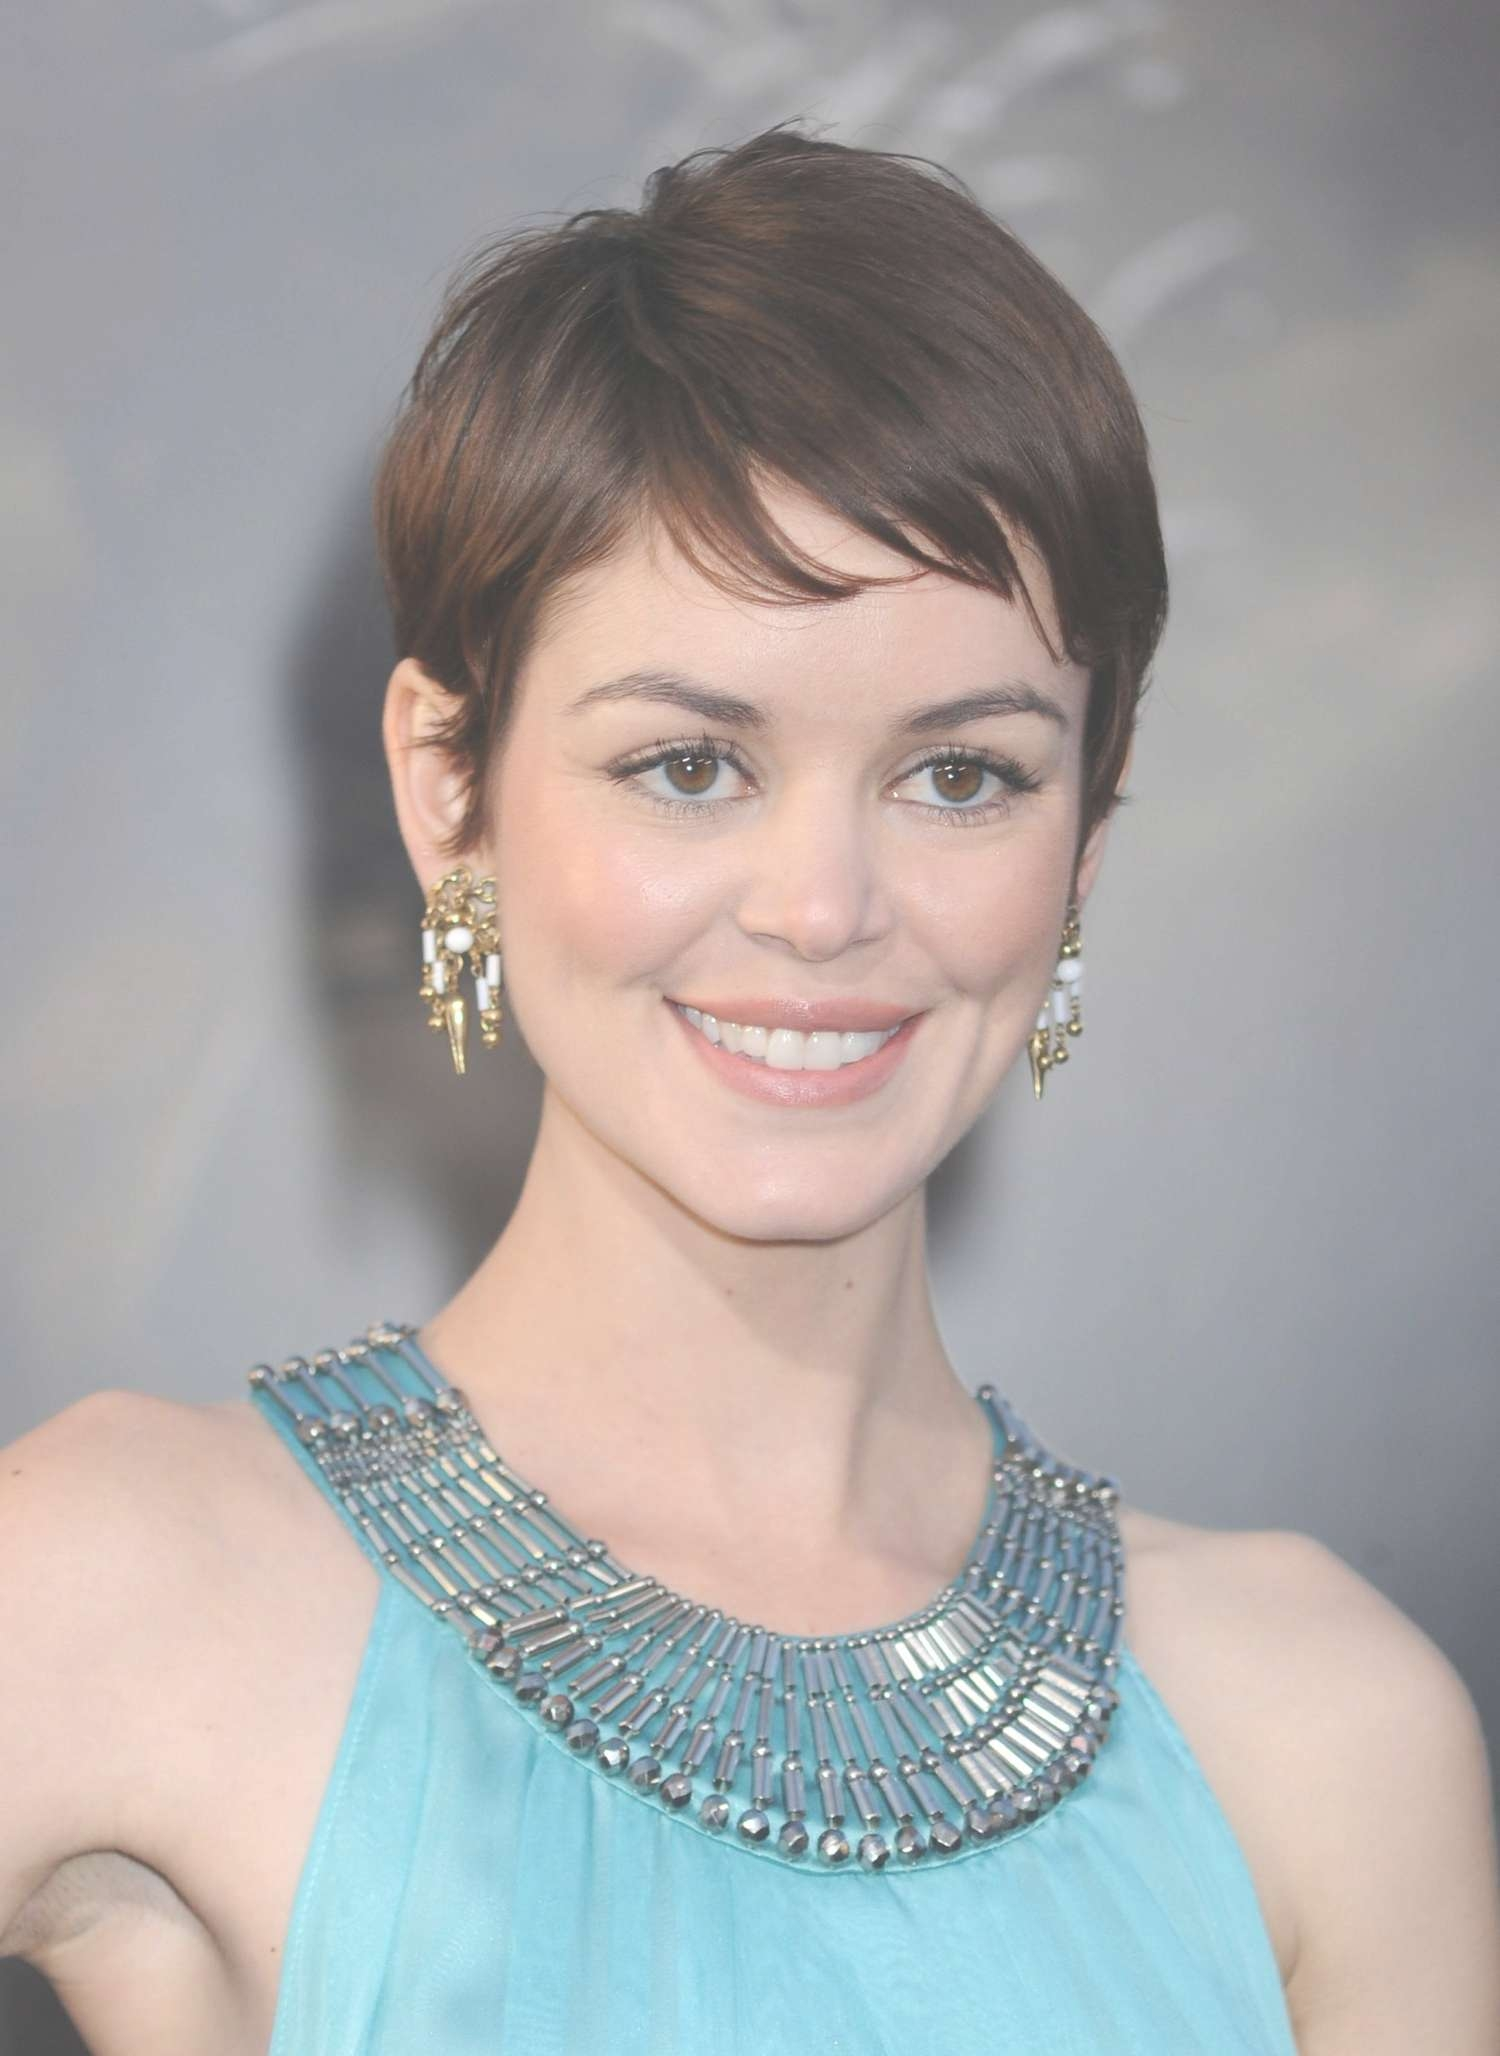 19 Cute Celebrity Haircuts To Consider | Glamour Throughout Recent Actresses With Pixie Hairstyles (View 2 of 15)